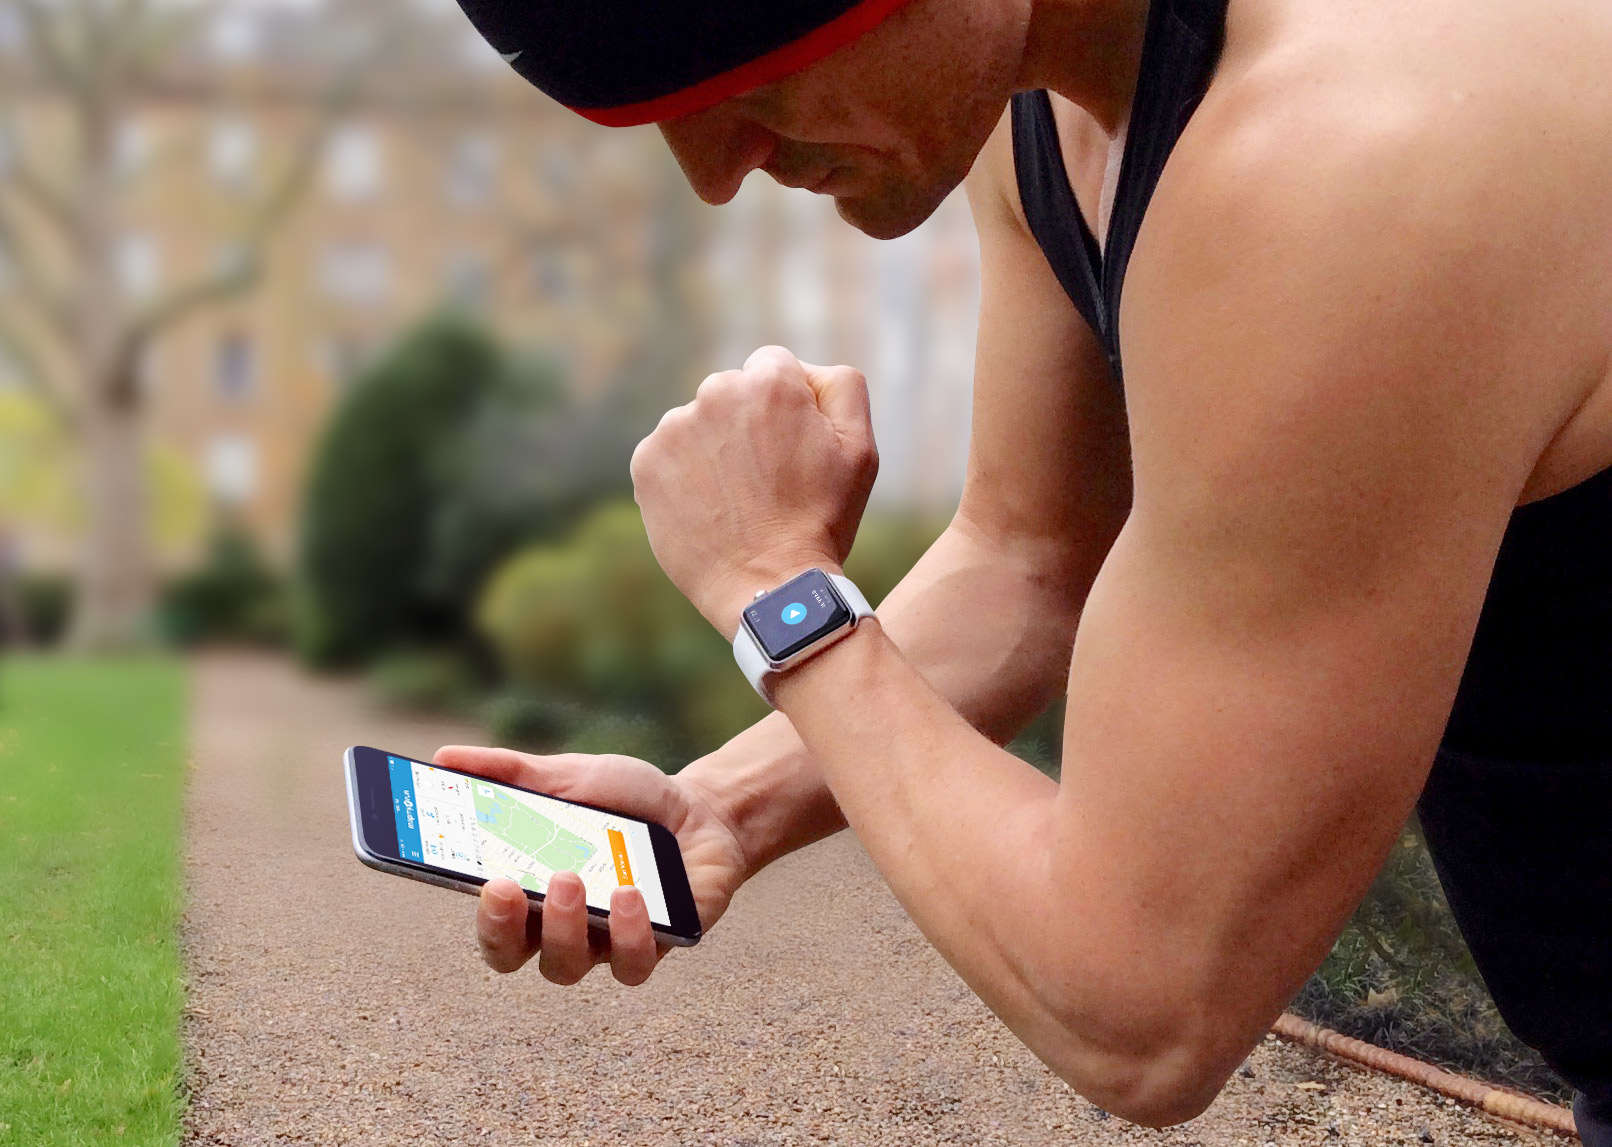 And the winner is… find out which running app offers the most features